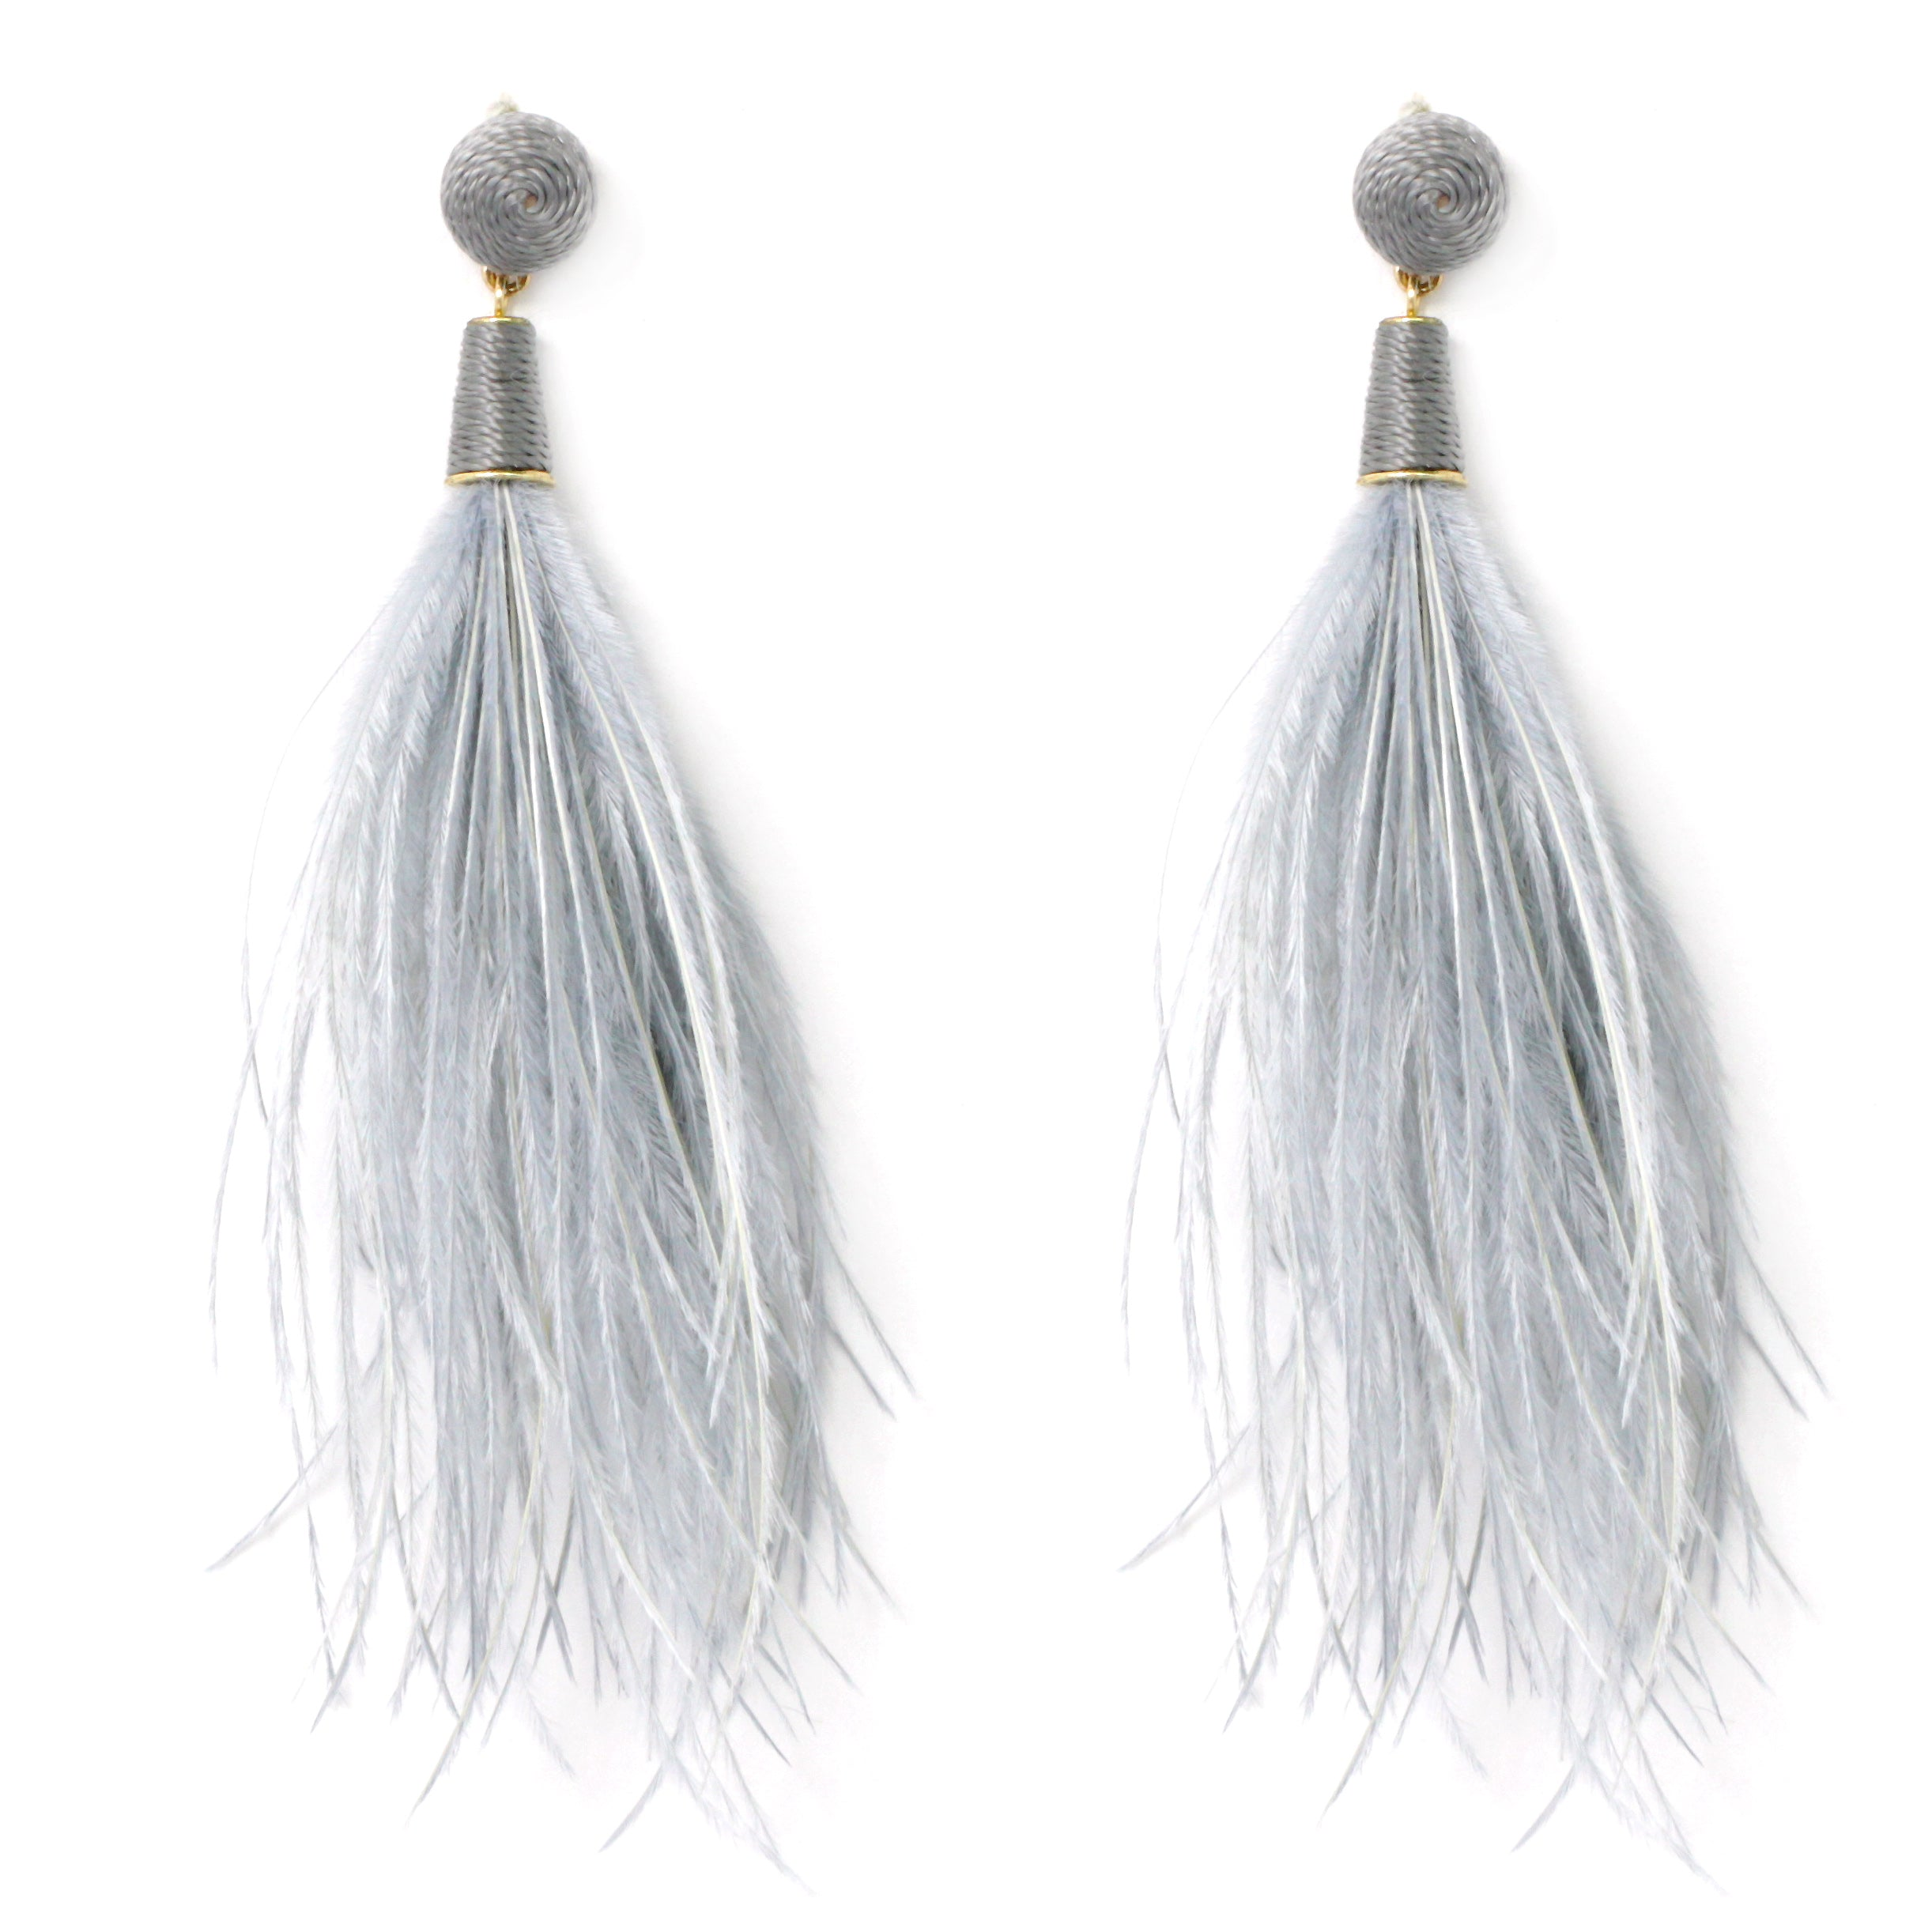 fringe us earrings s silver tone stone chain claire